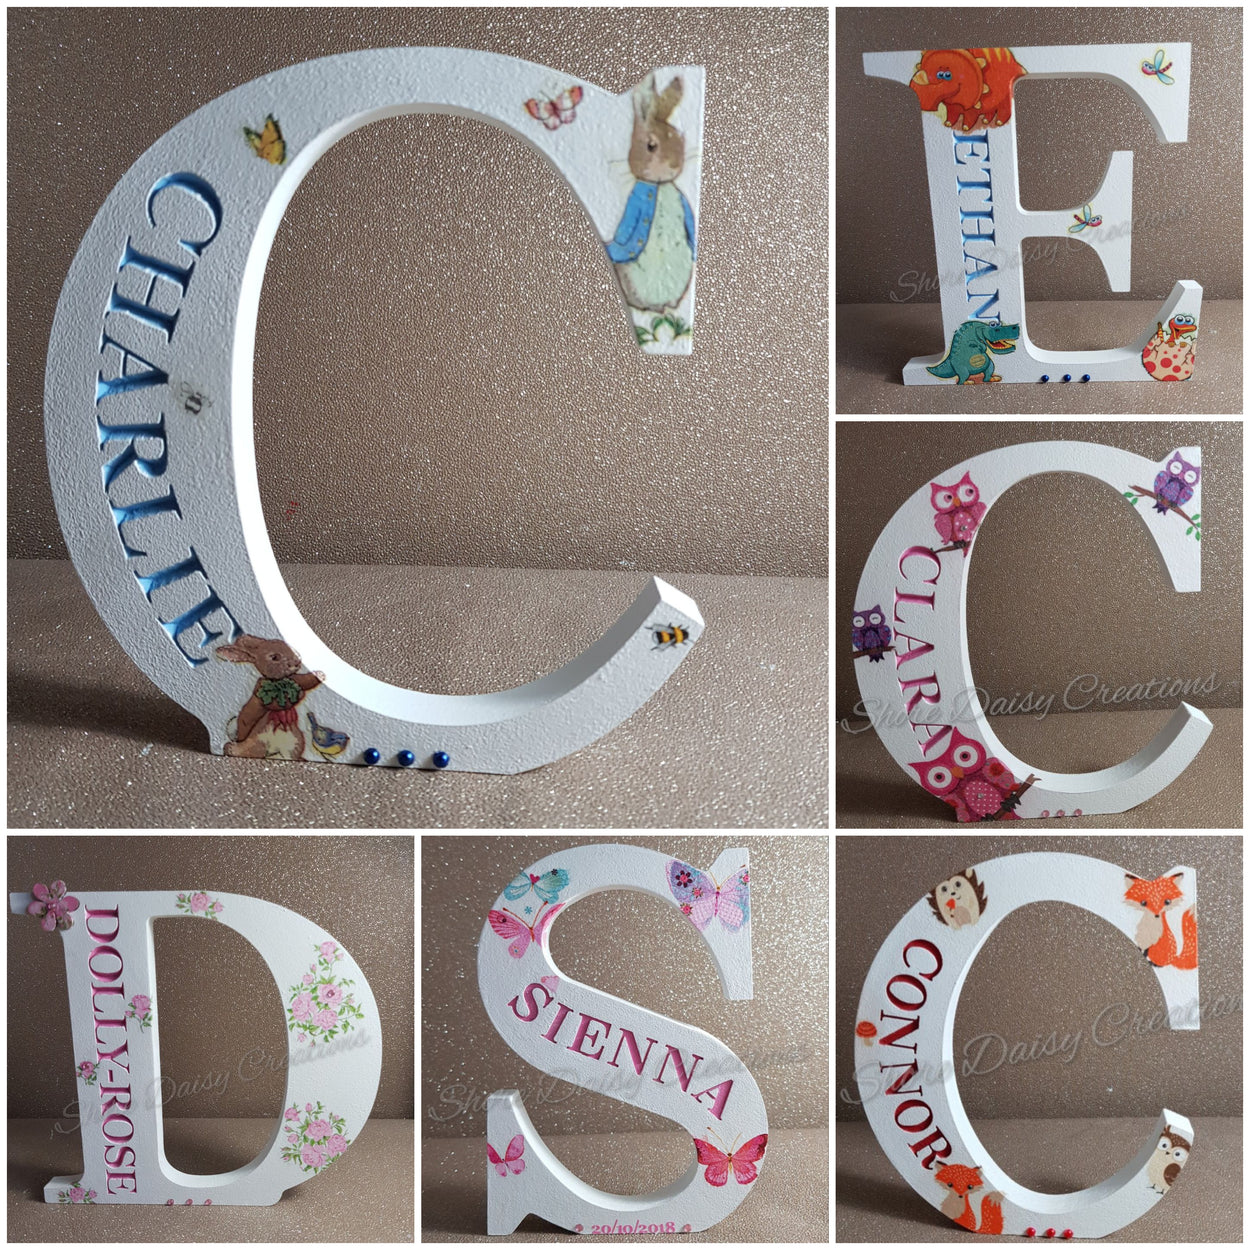 Freestanding Engraved Letters (Decorated)